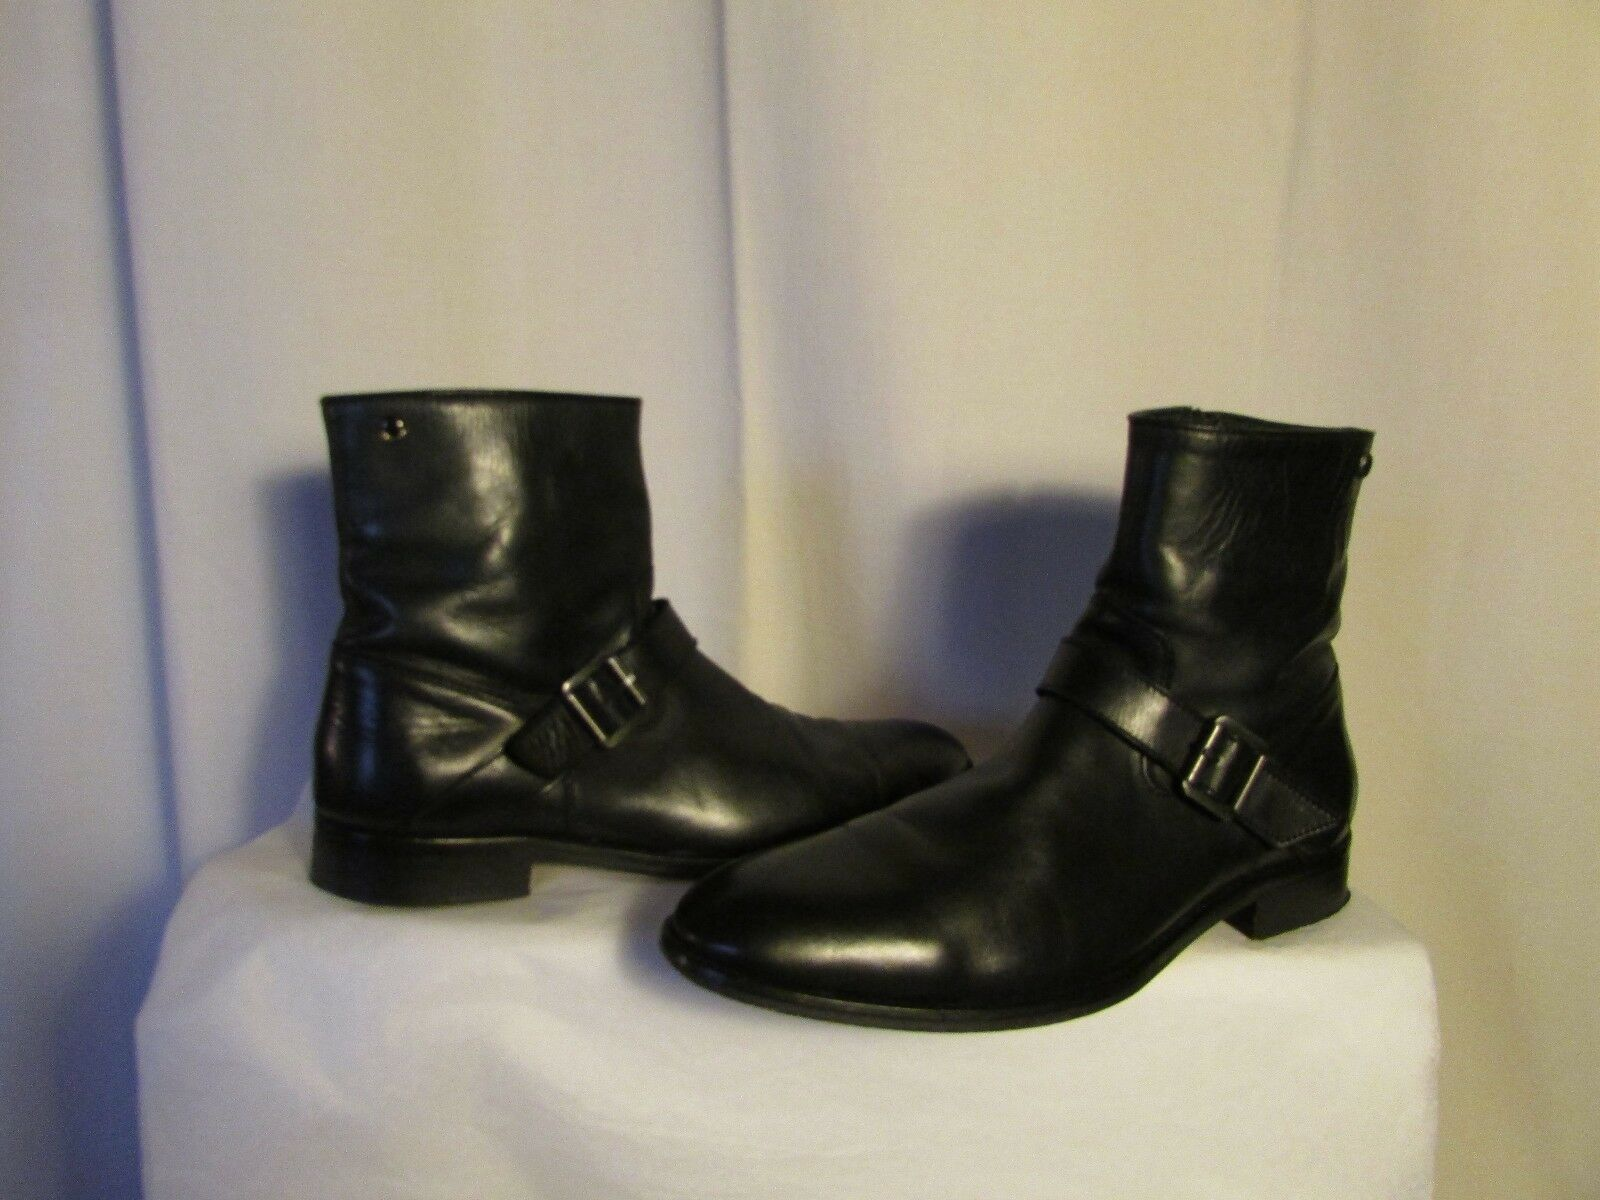 Boots   Boots Ikks Black Leather 45